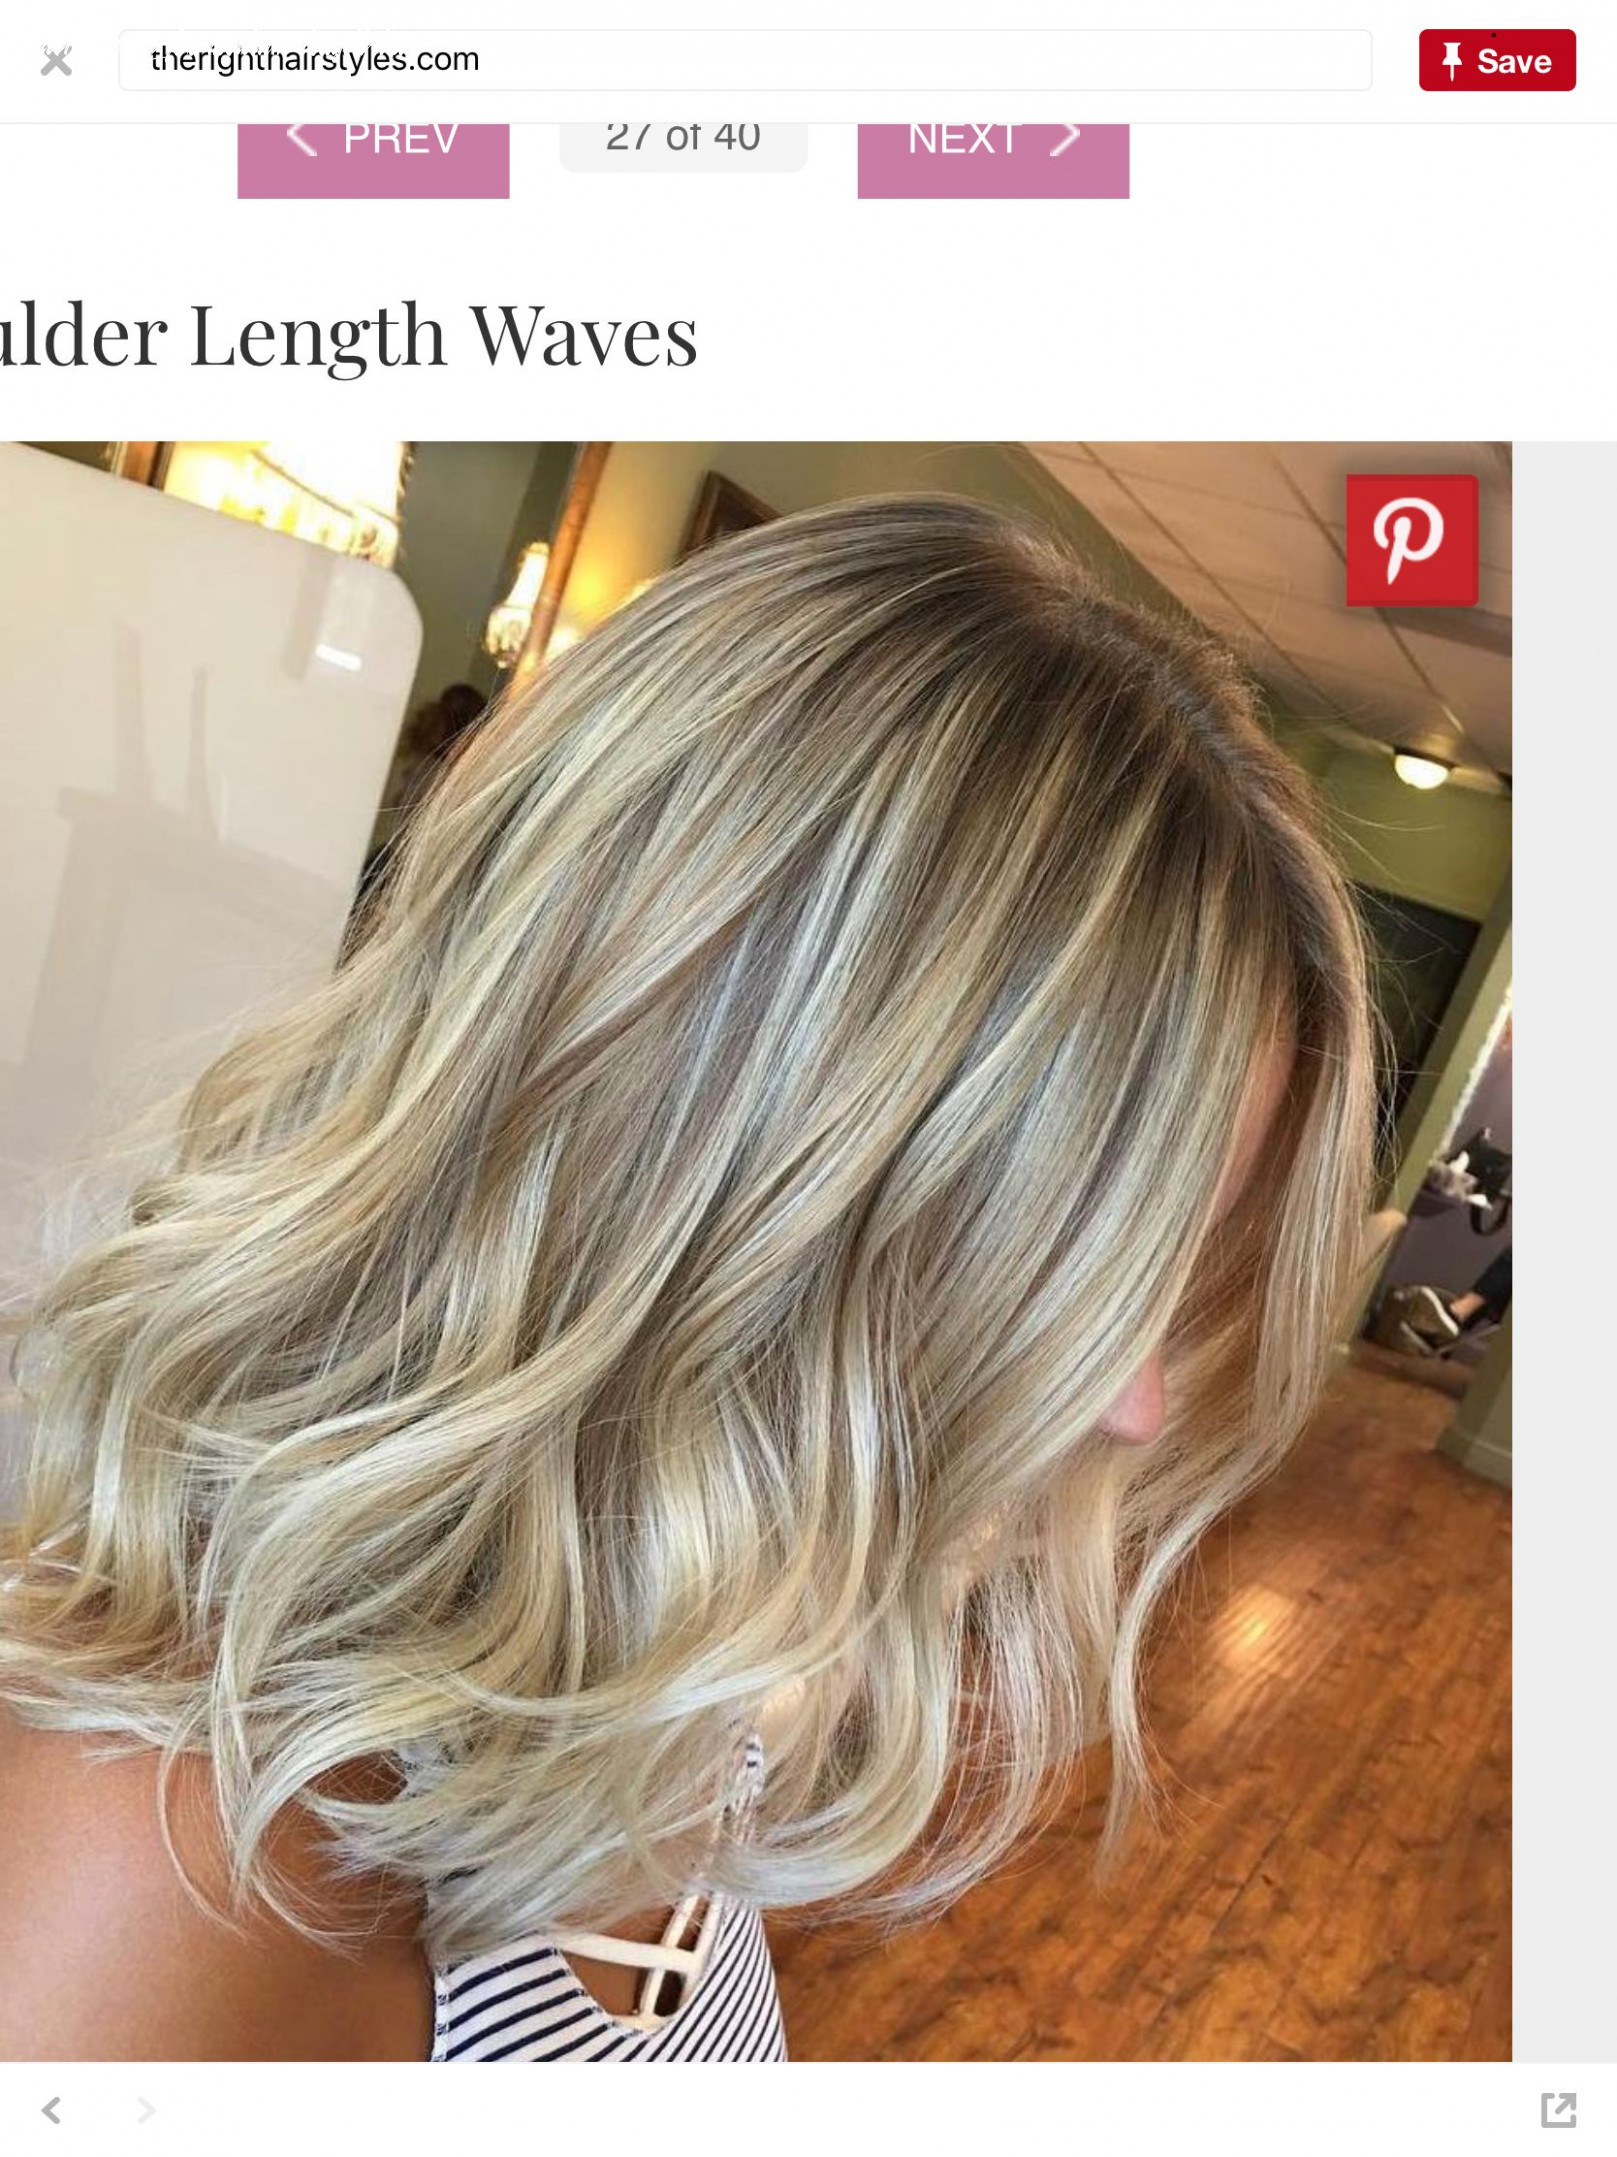 Shoulder length blonde beach waves (with images) | beach wave hair